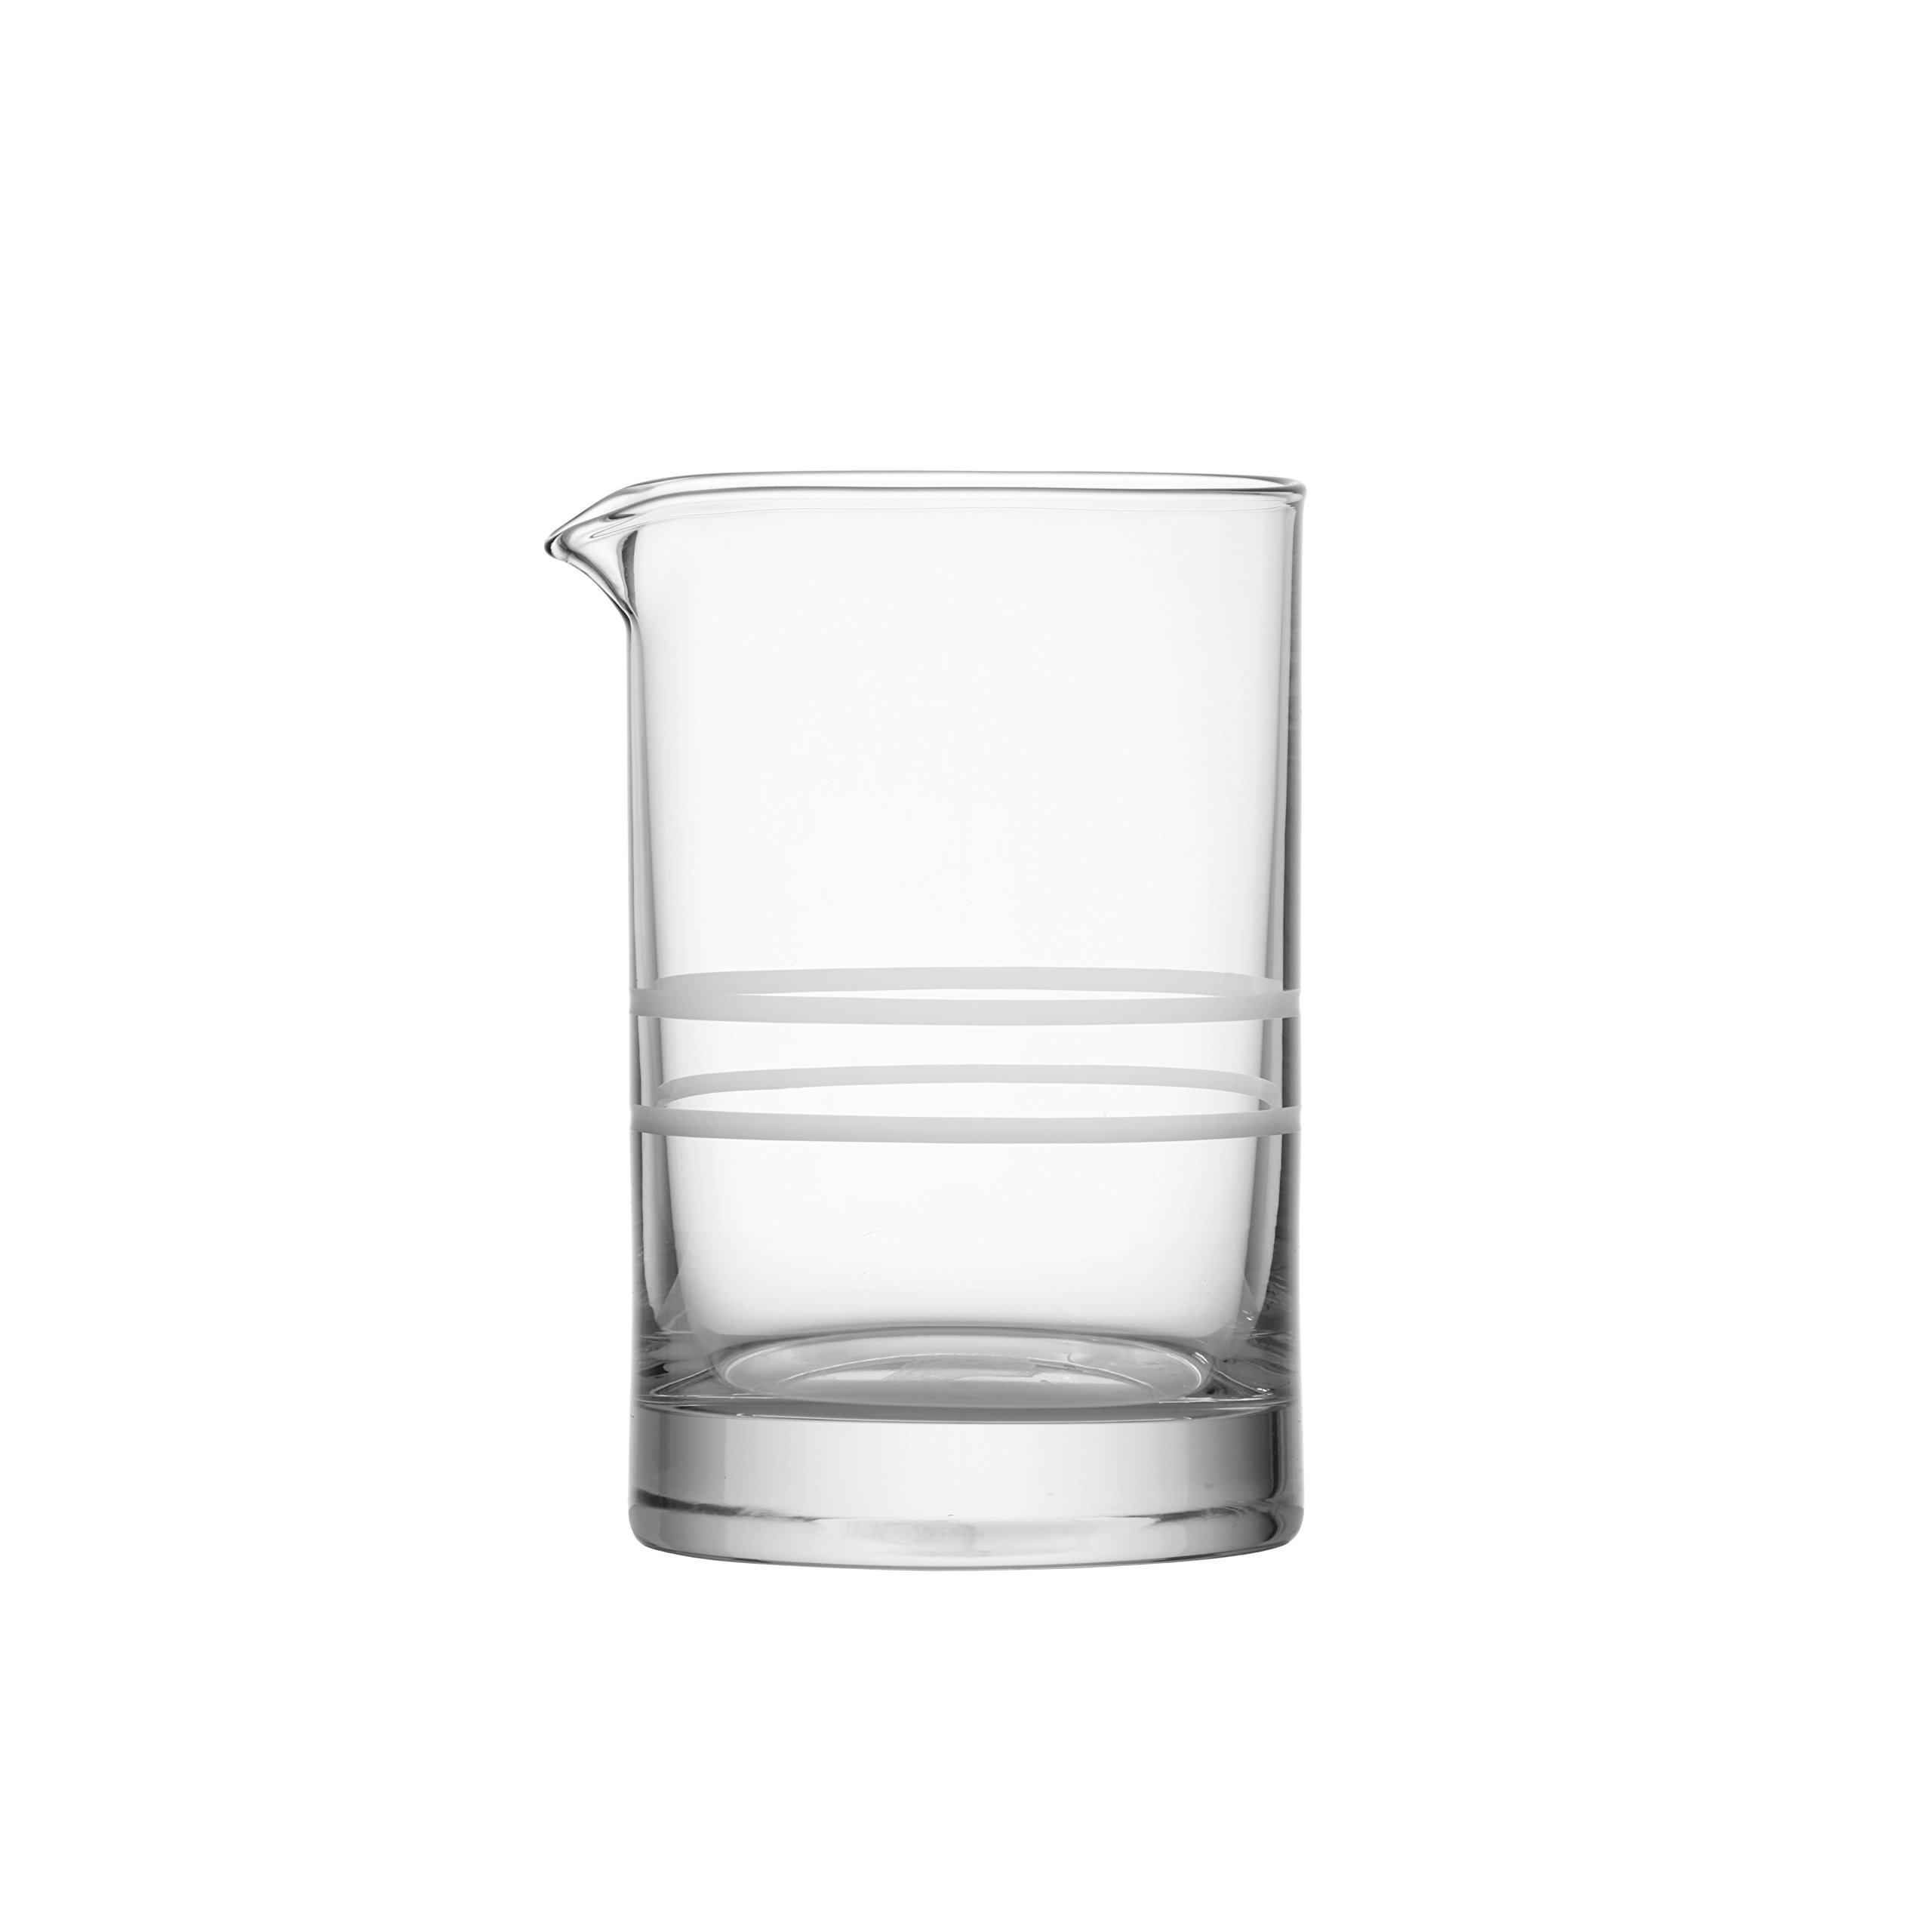 Crafthouse by Fortessa Professional Barware by Charles Joly, Etched Schott Zwiesel Tritan 25.5 oz Cocktail Mixing Glass, by Crafthouse by Fortessa